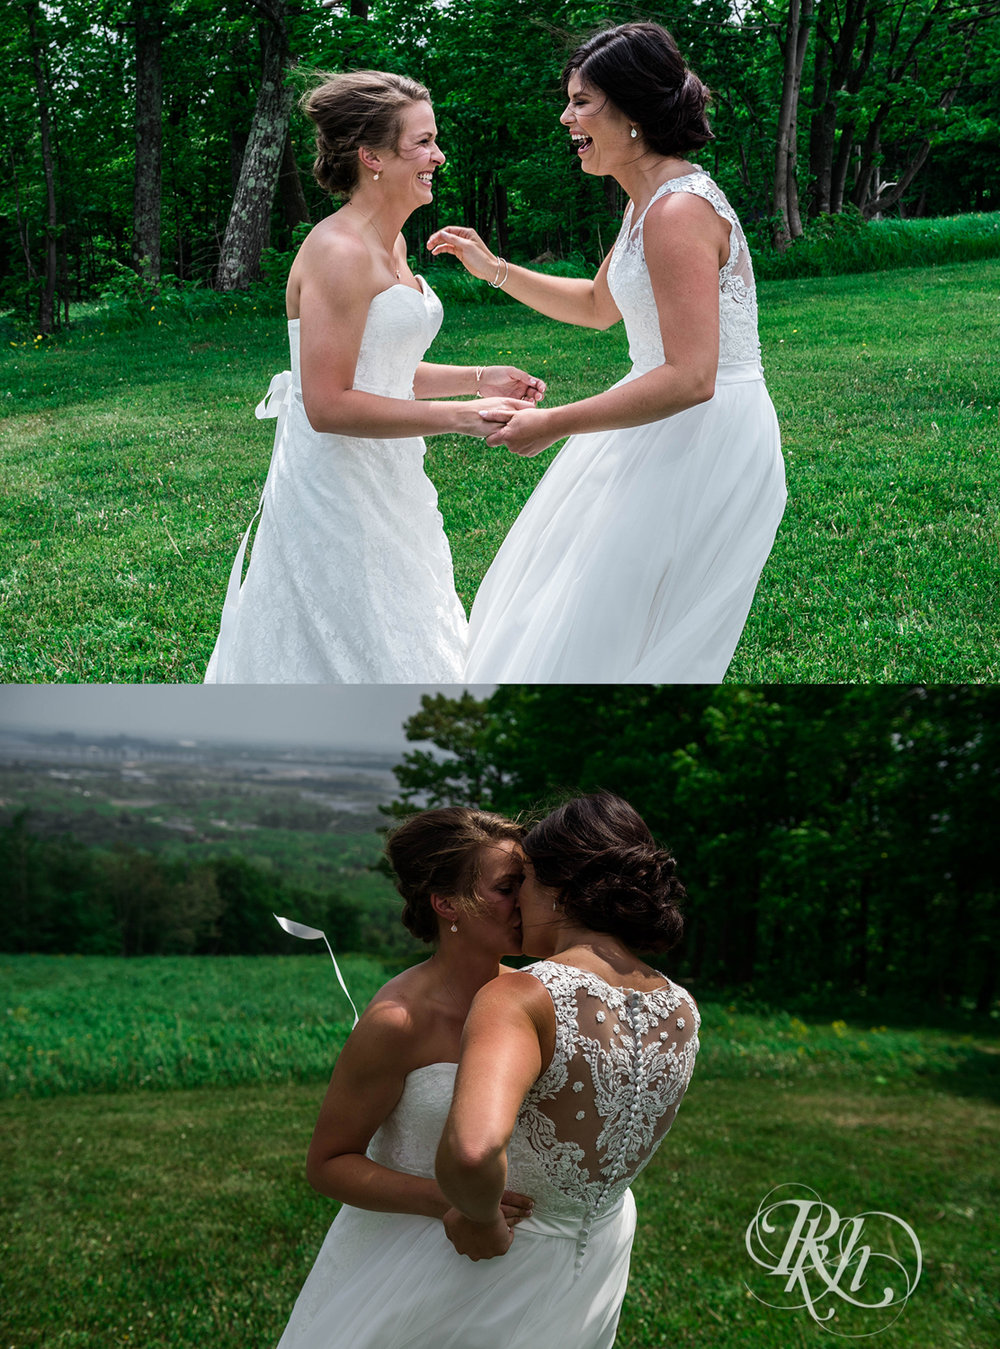 First Look - Minnesota Wedding Photography - RKH Images - Blog (1 of 3).jpg